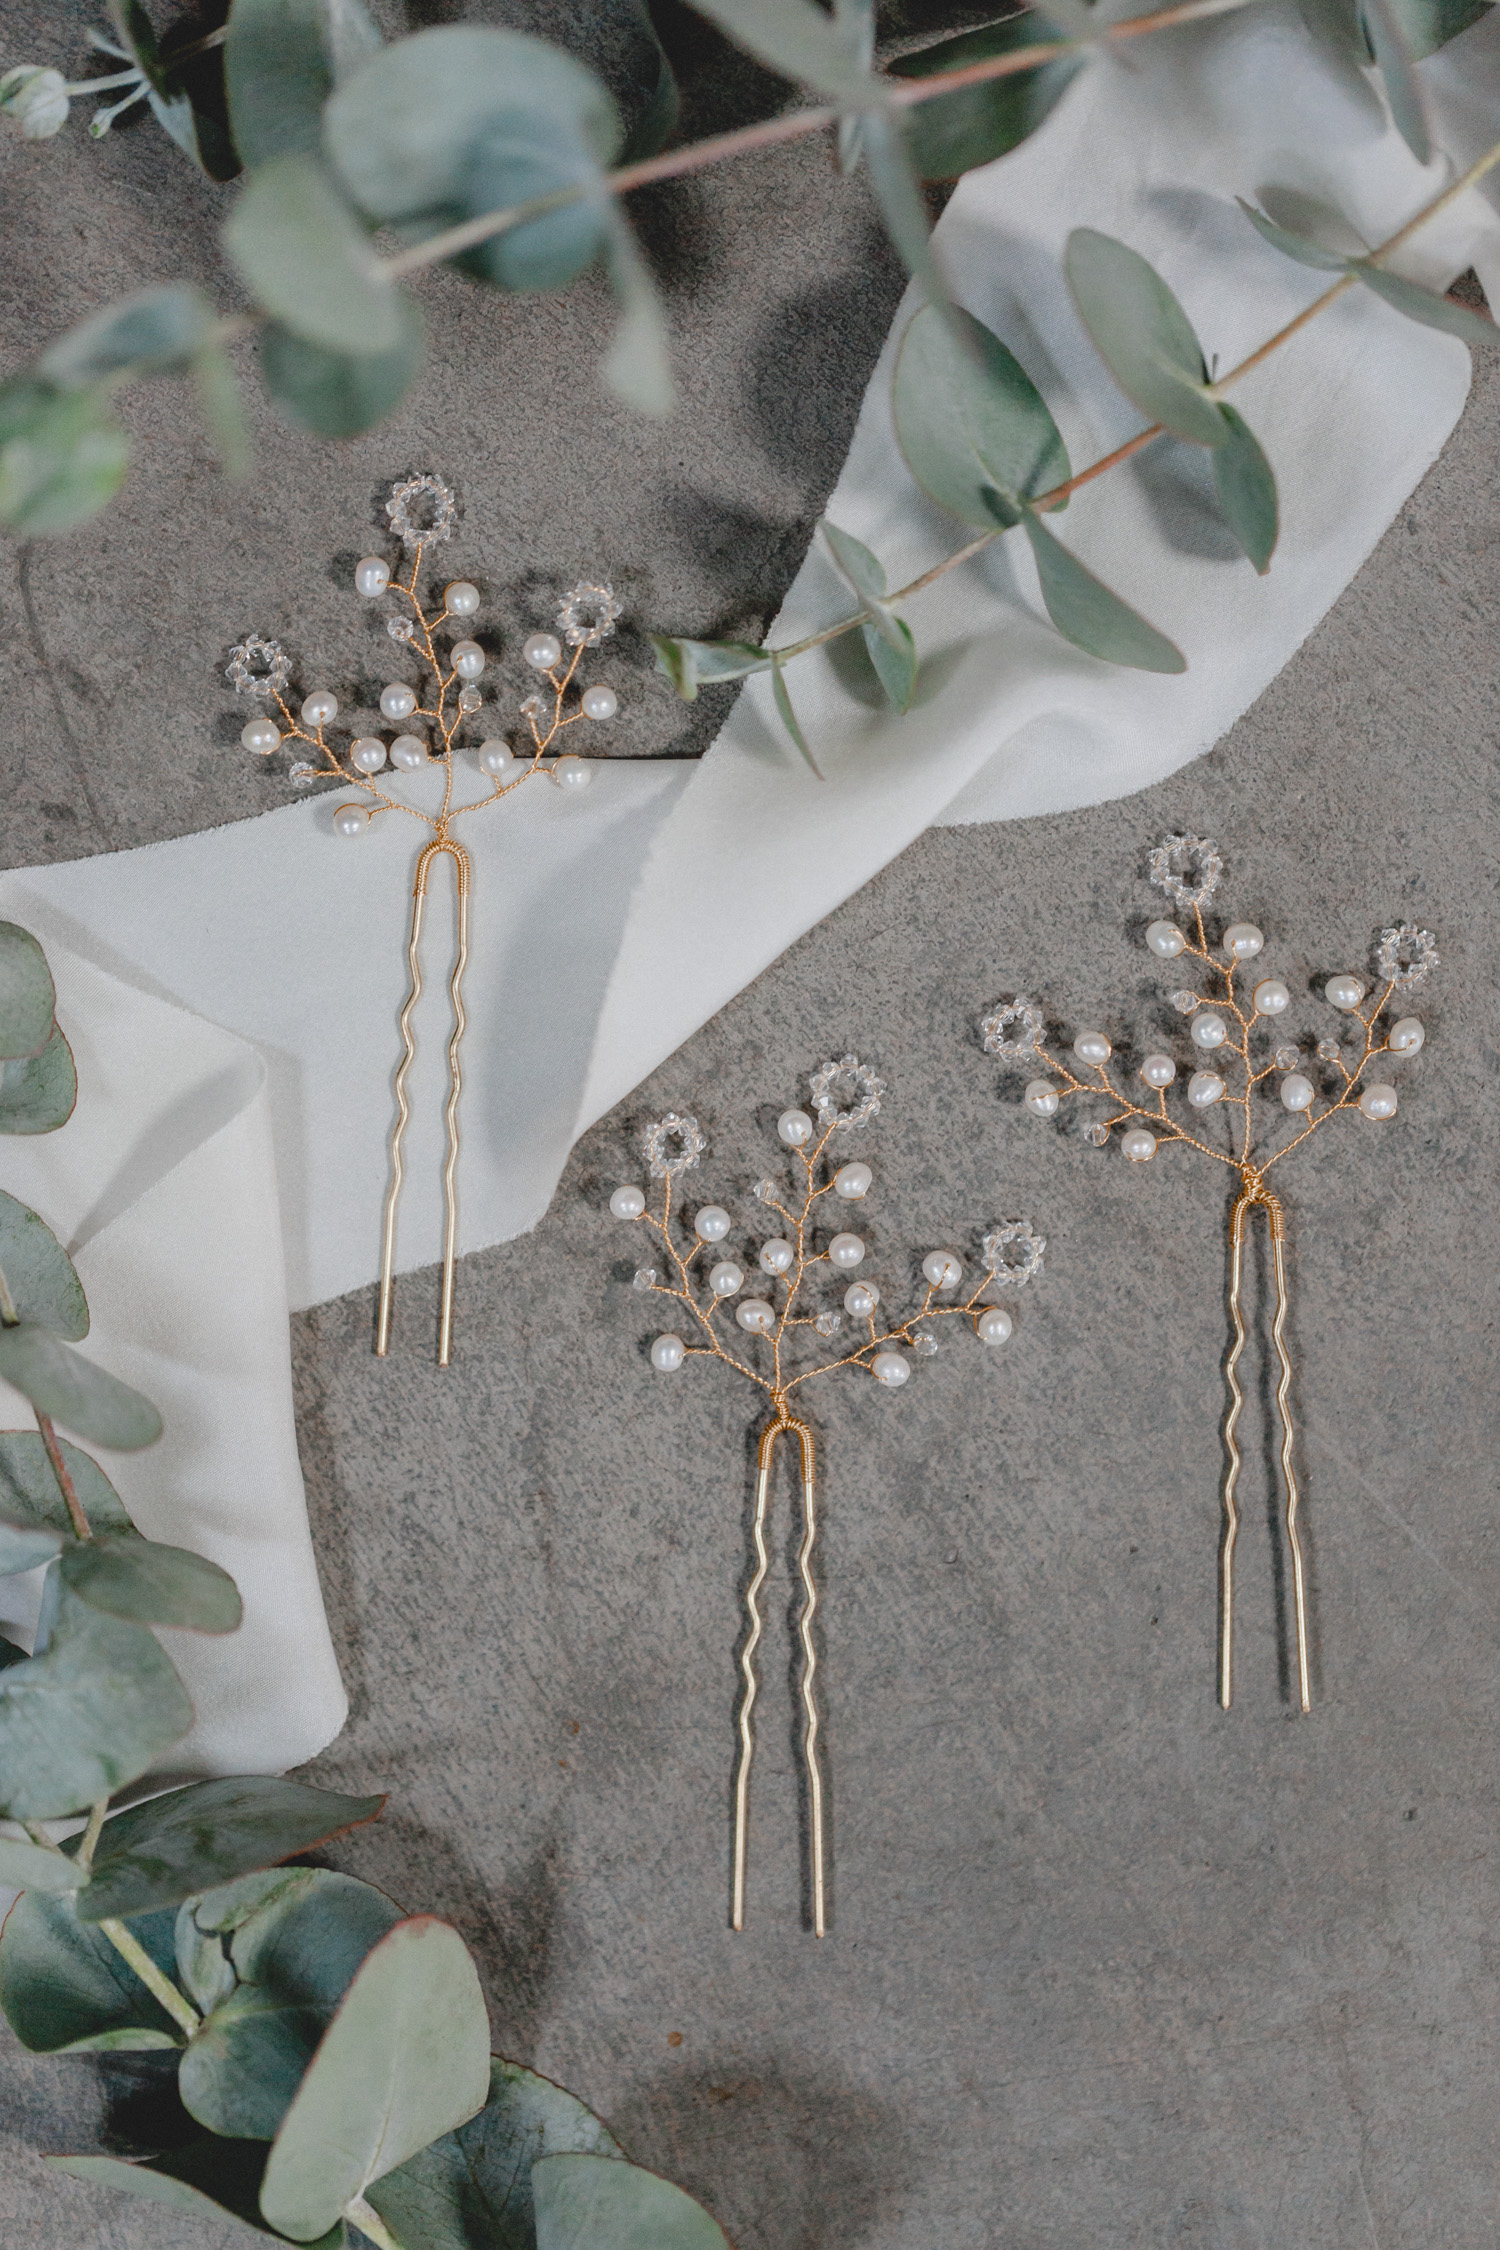 This intricately branched hairpin is crisscrossed by delicate shimmering freshwater pearls and glittering Swarovski crystals, which as a highlight at each end have been worked into a circular flower shape.